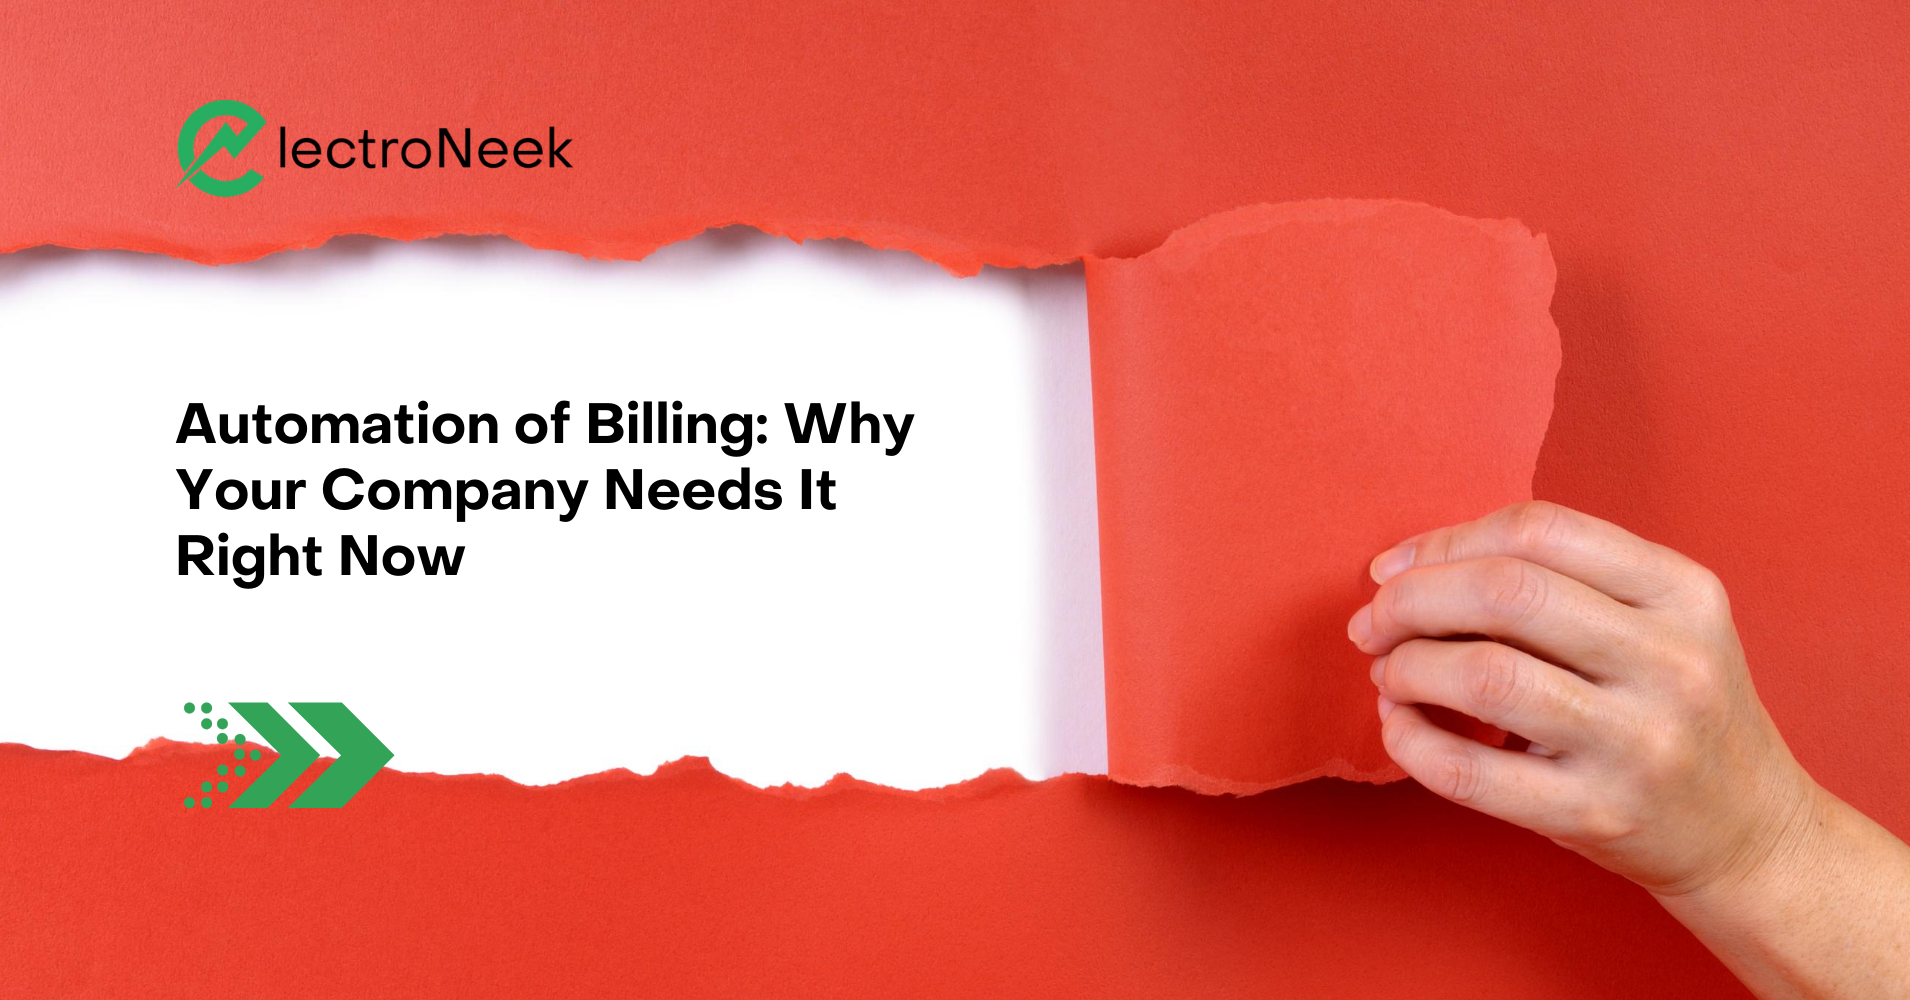 Automation of Billing: Why Your Company Needs It Right Now